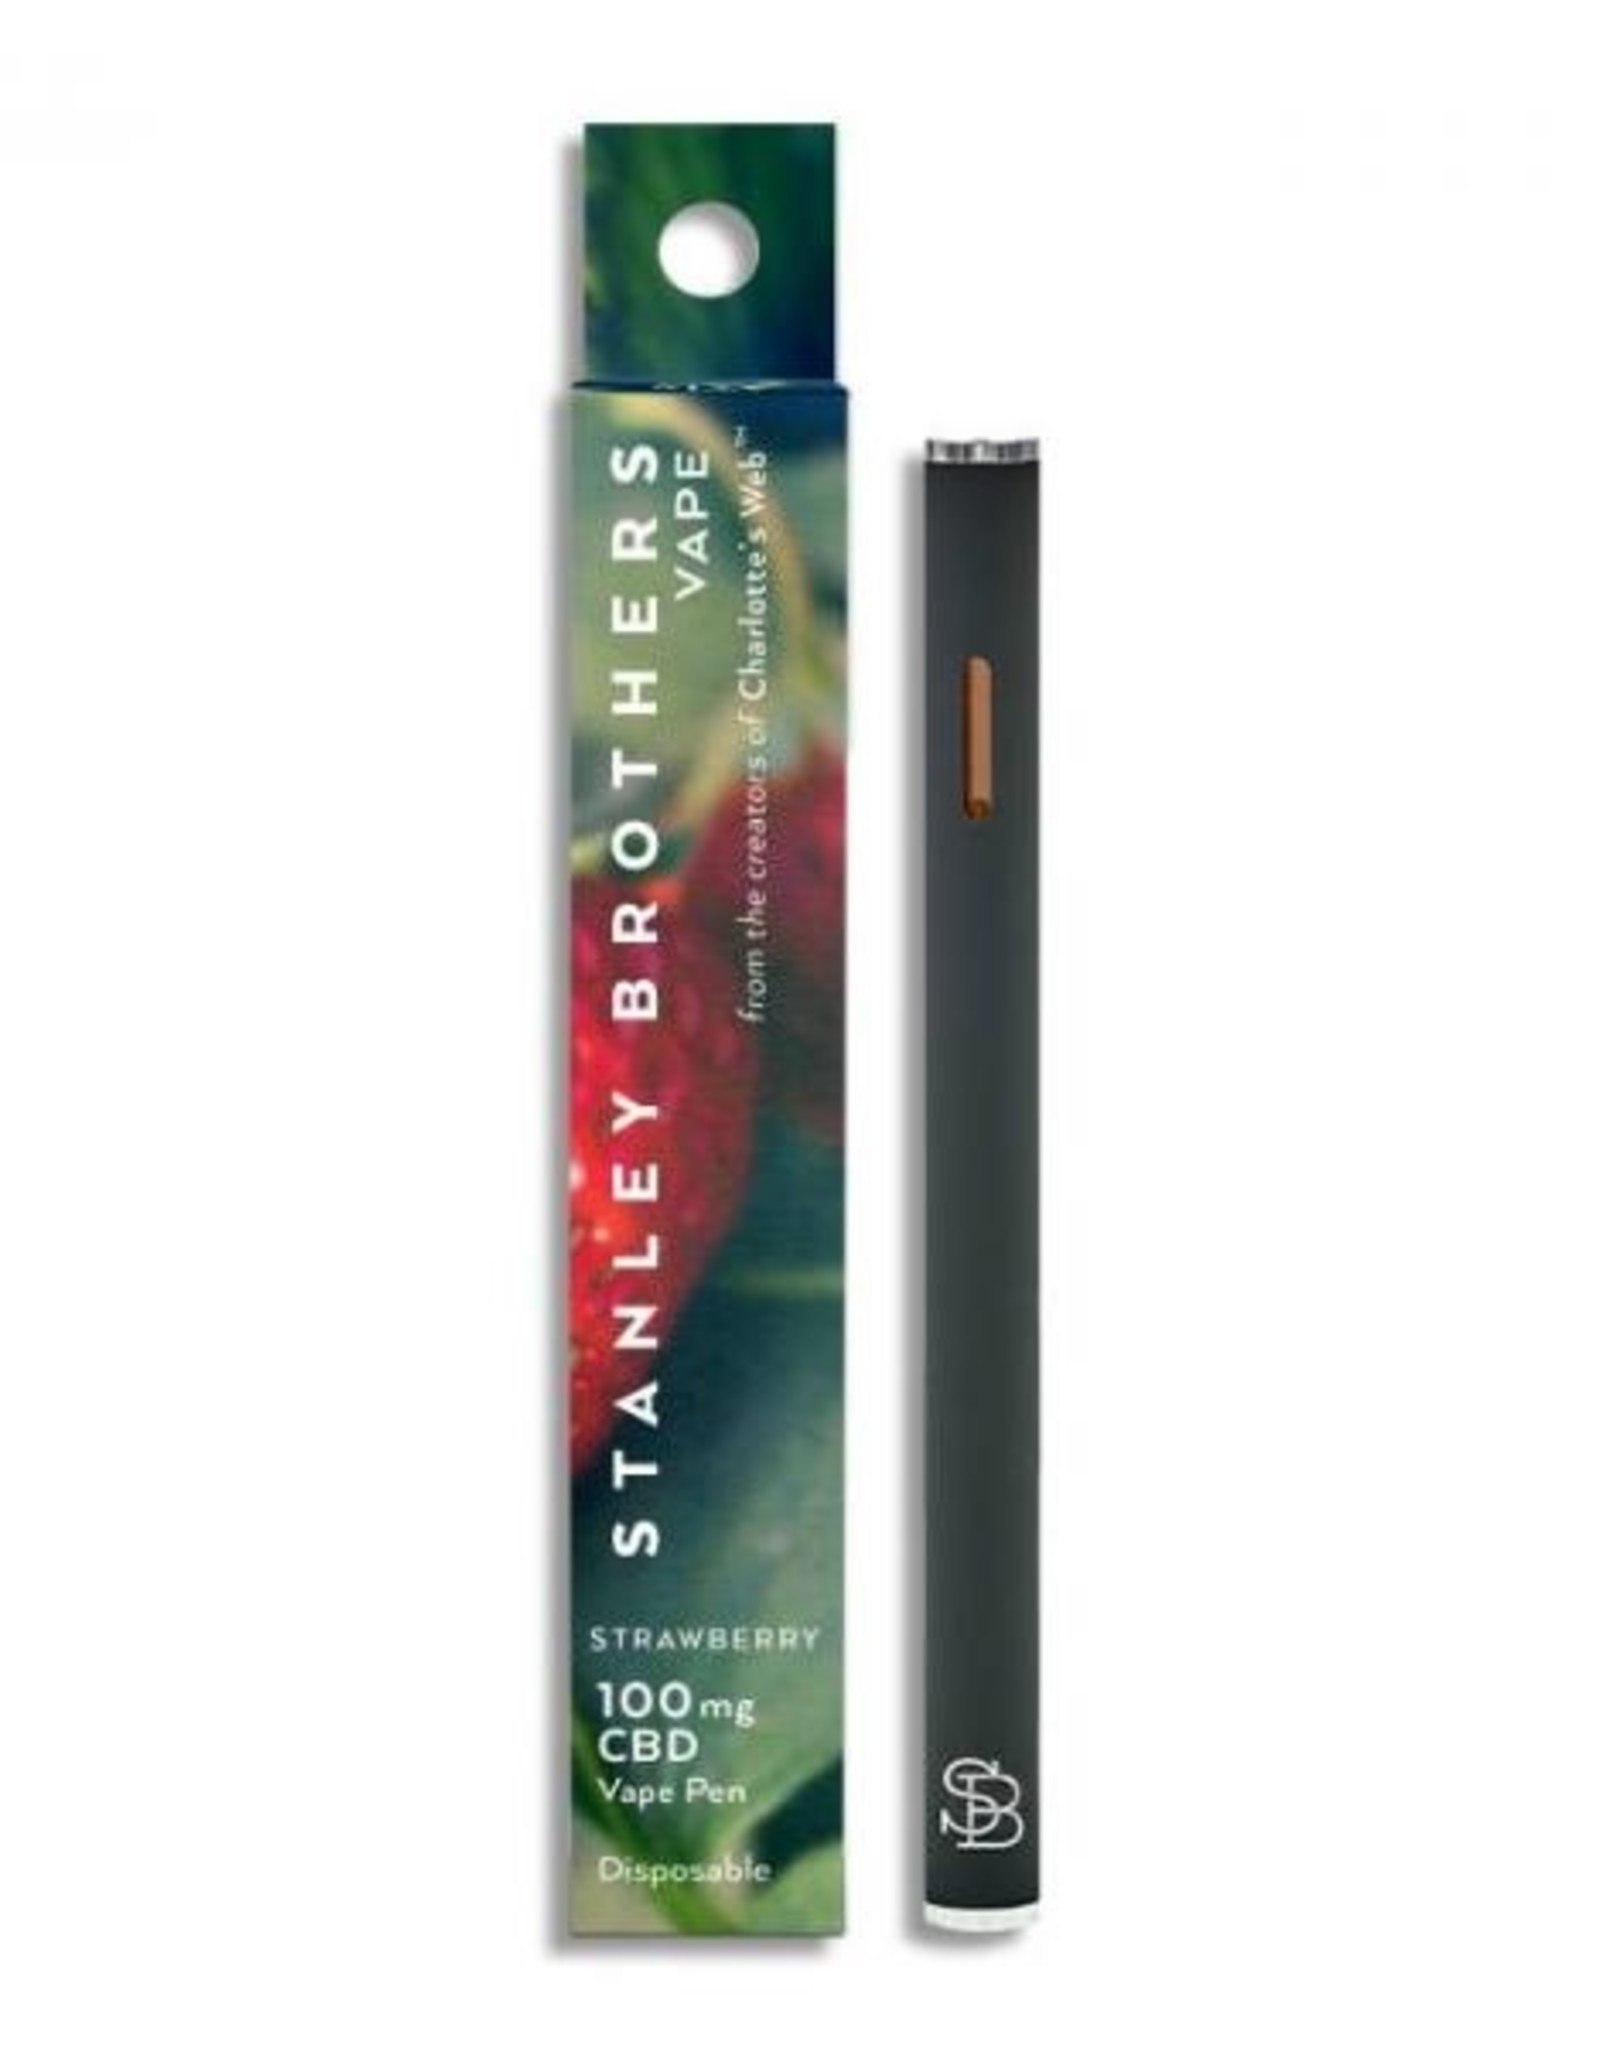 Stanley Brothers Strawberry Disposable CBD Vape - 100mg